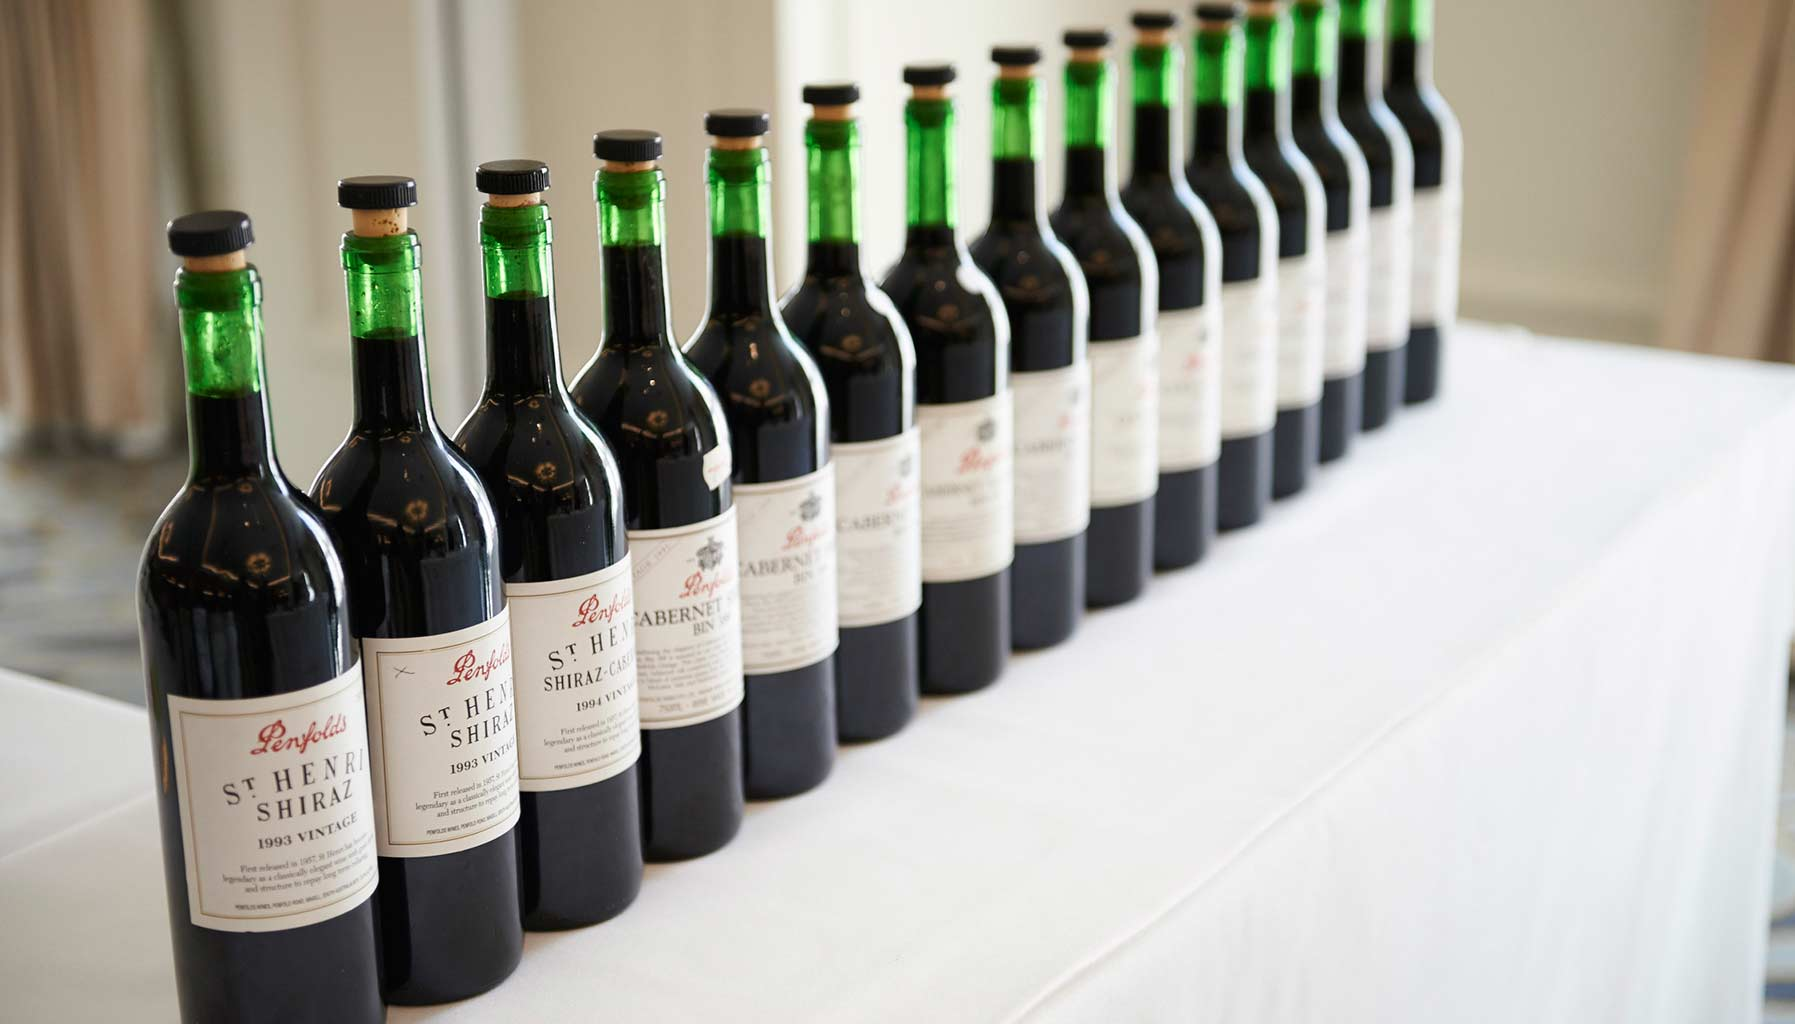 Penfolds red wines